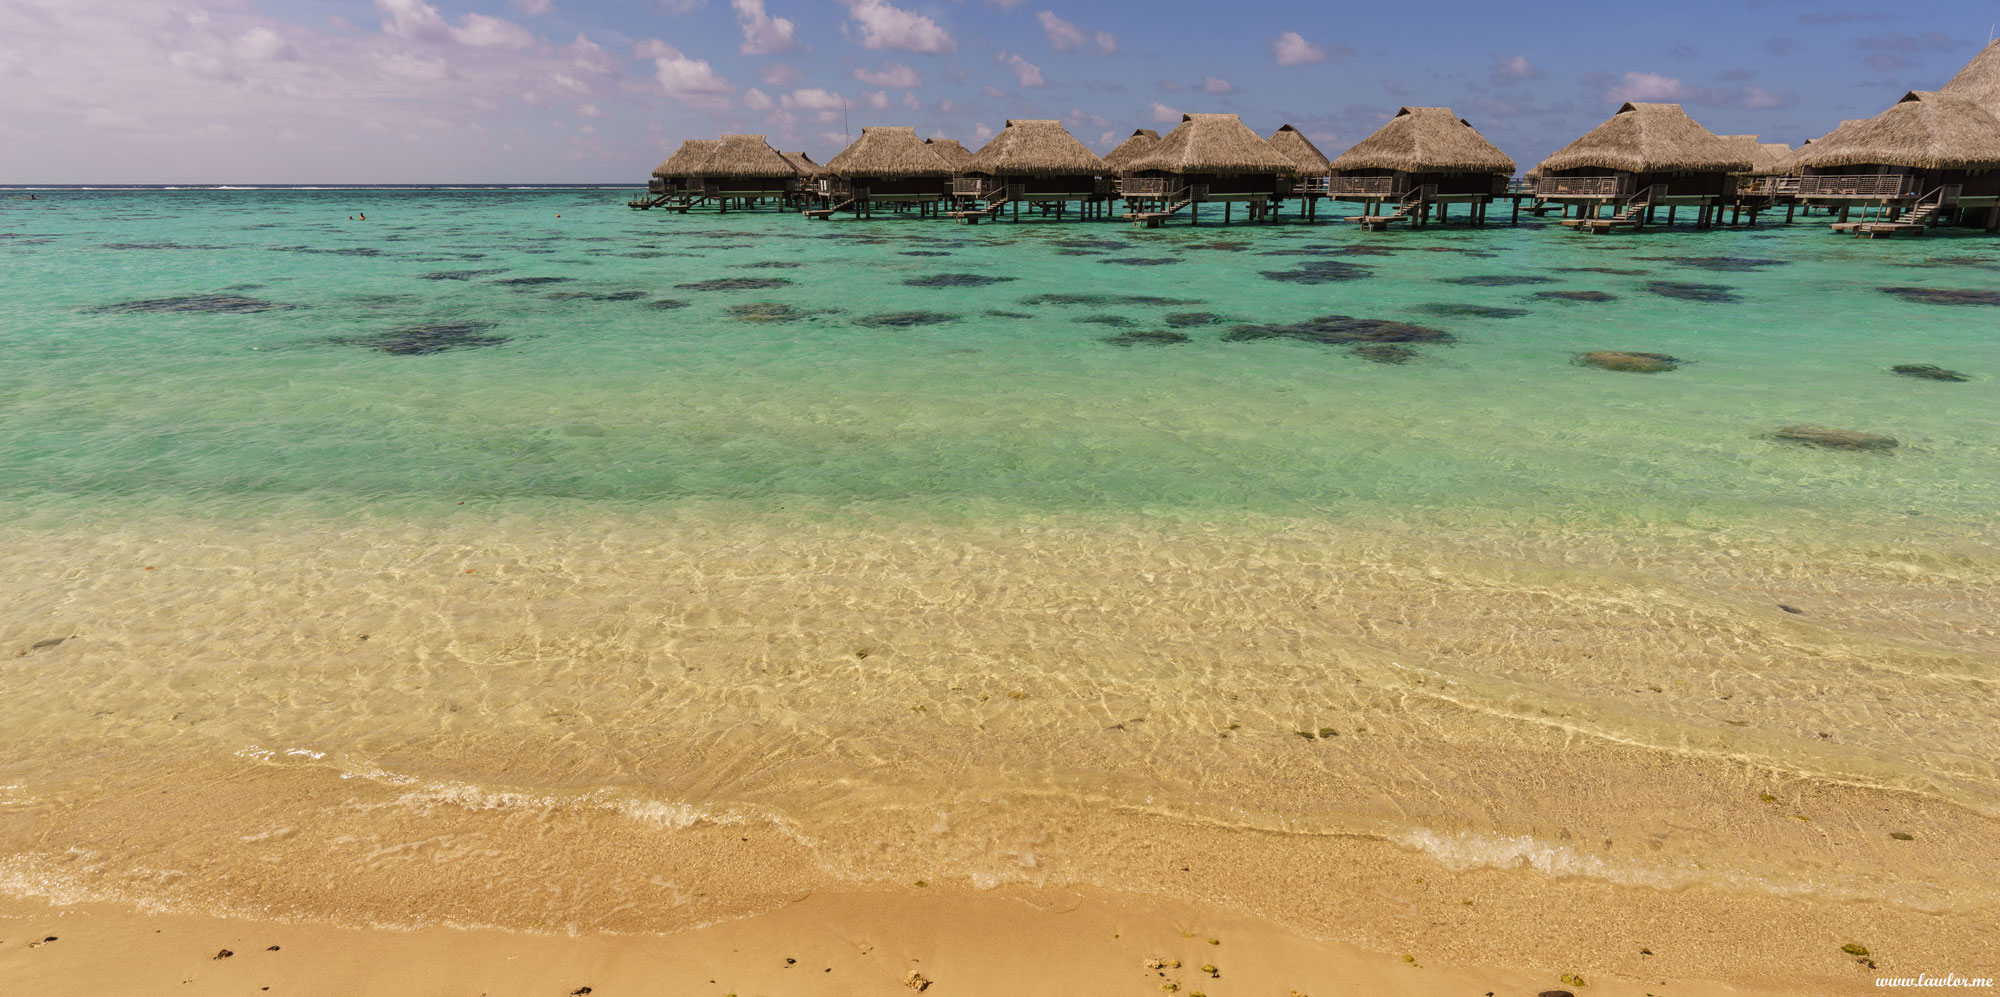 Hilton Moorea - French Polynesia, Free Landscape Photography, free landscape photos, free nature images, free HD images, free high definition stock images, free stock images download, desktop background, desktop wallpapers, free screensaver, landscape photography